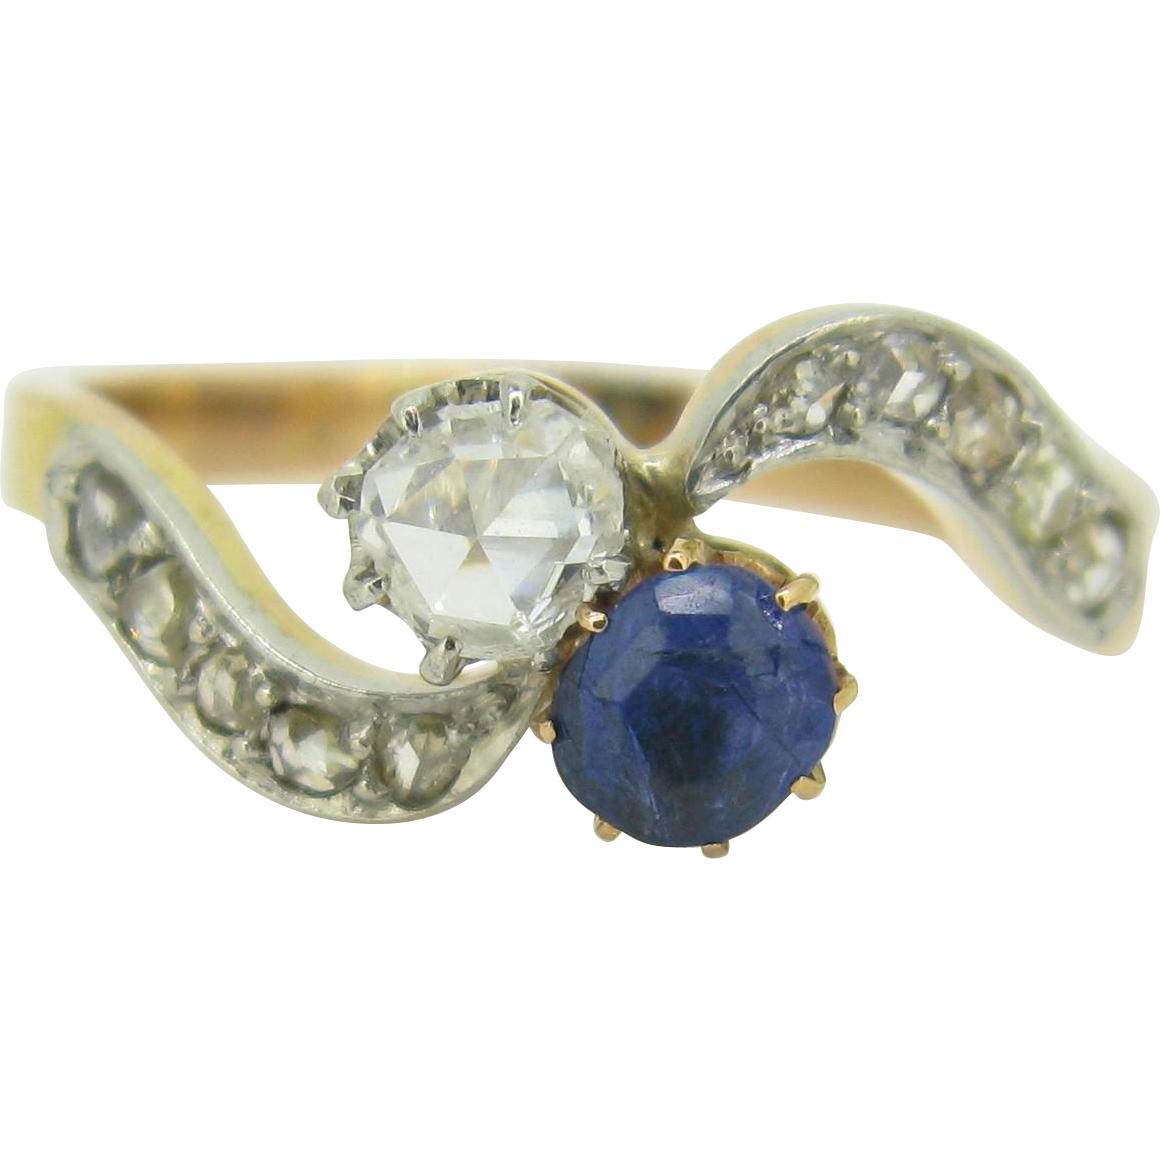 Lovely Toi et Moi, Bypass ring, Twist ring, Sapphire and rose cut Diamond ring, 18kt gold and platinum